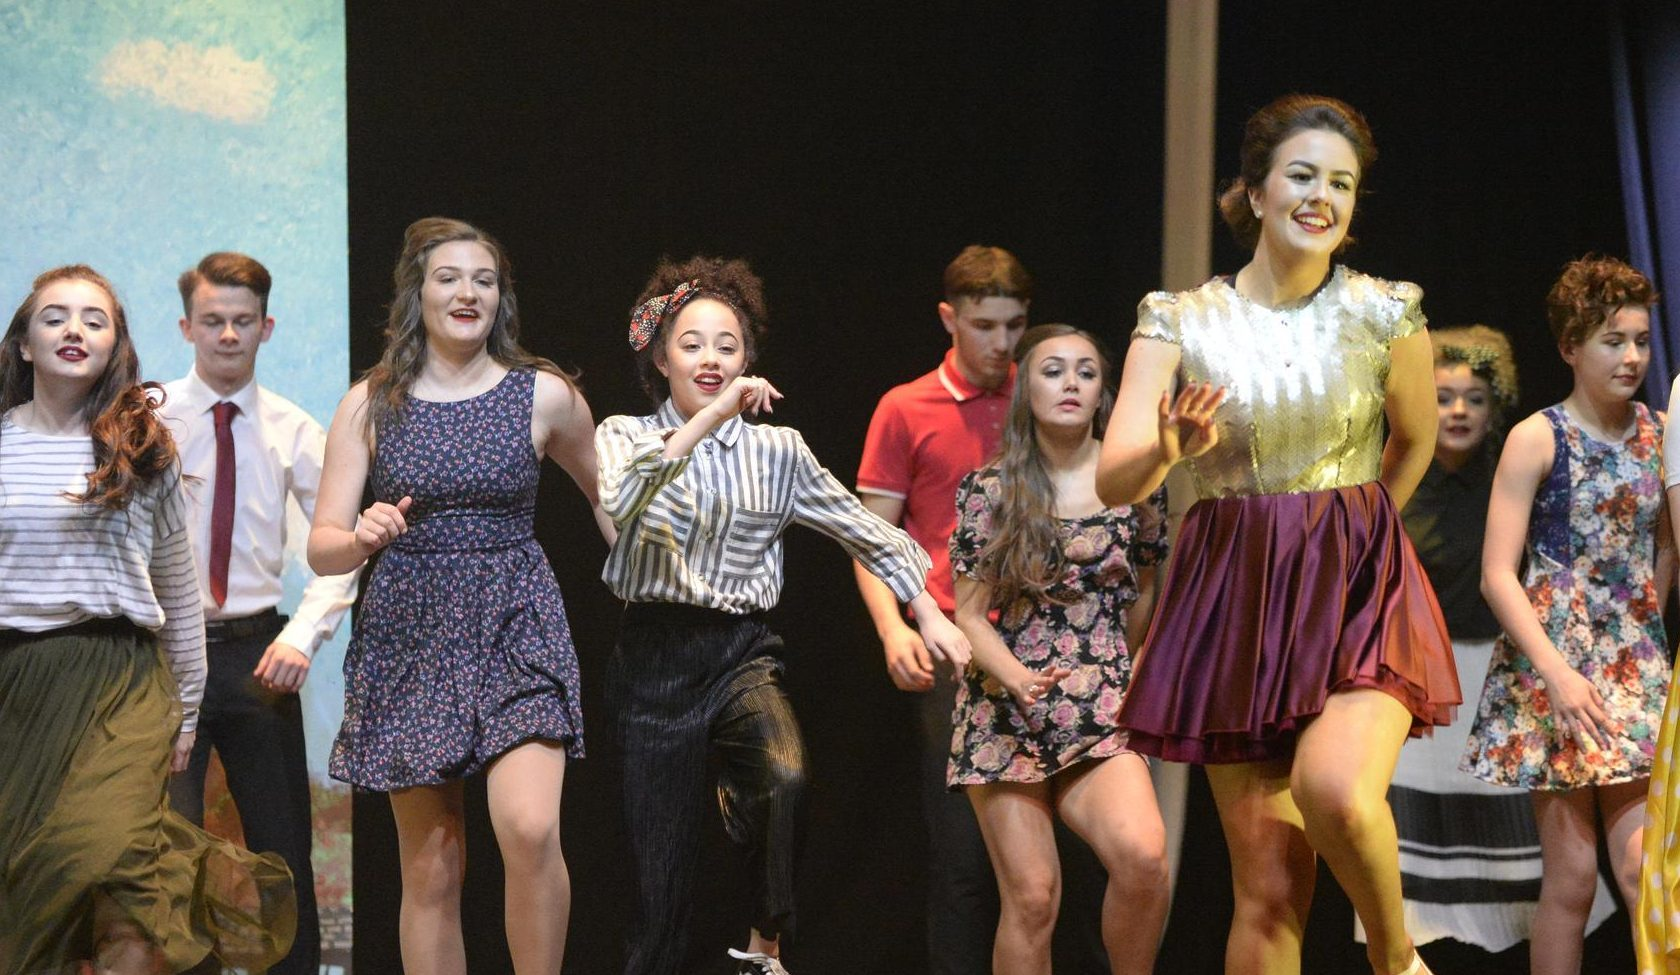 Contestants from Dundee's St John's RC High School strut their stuff.